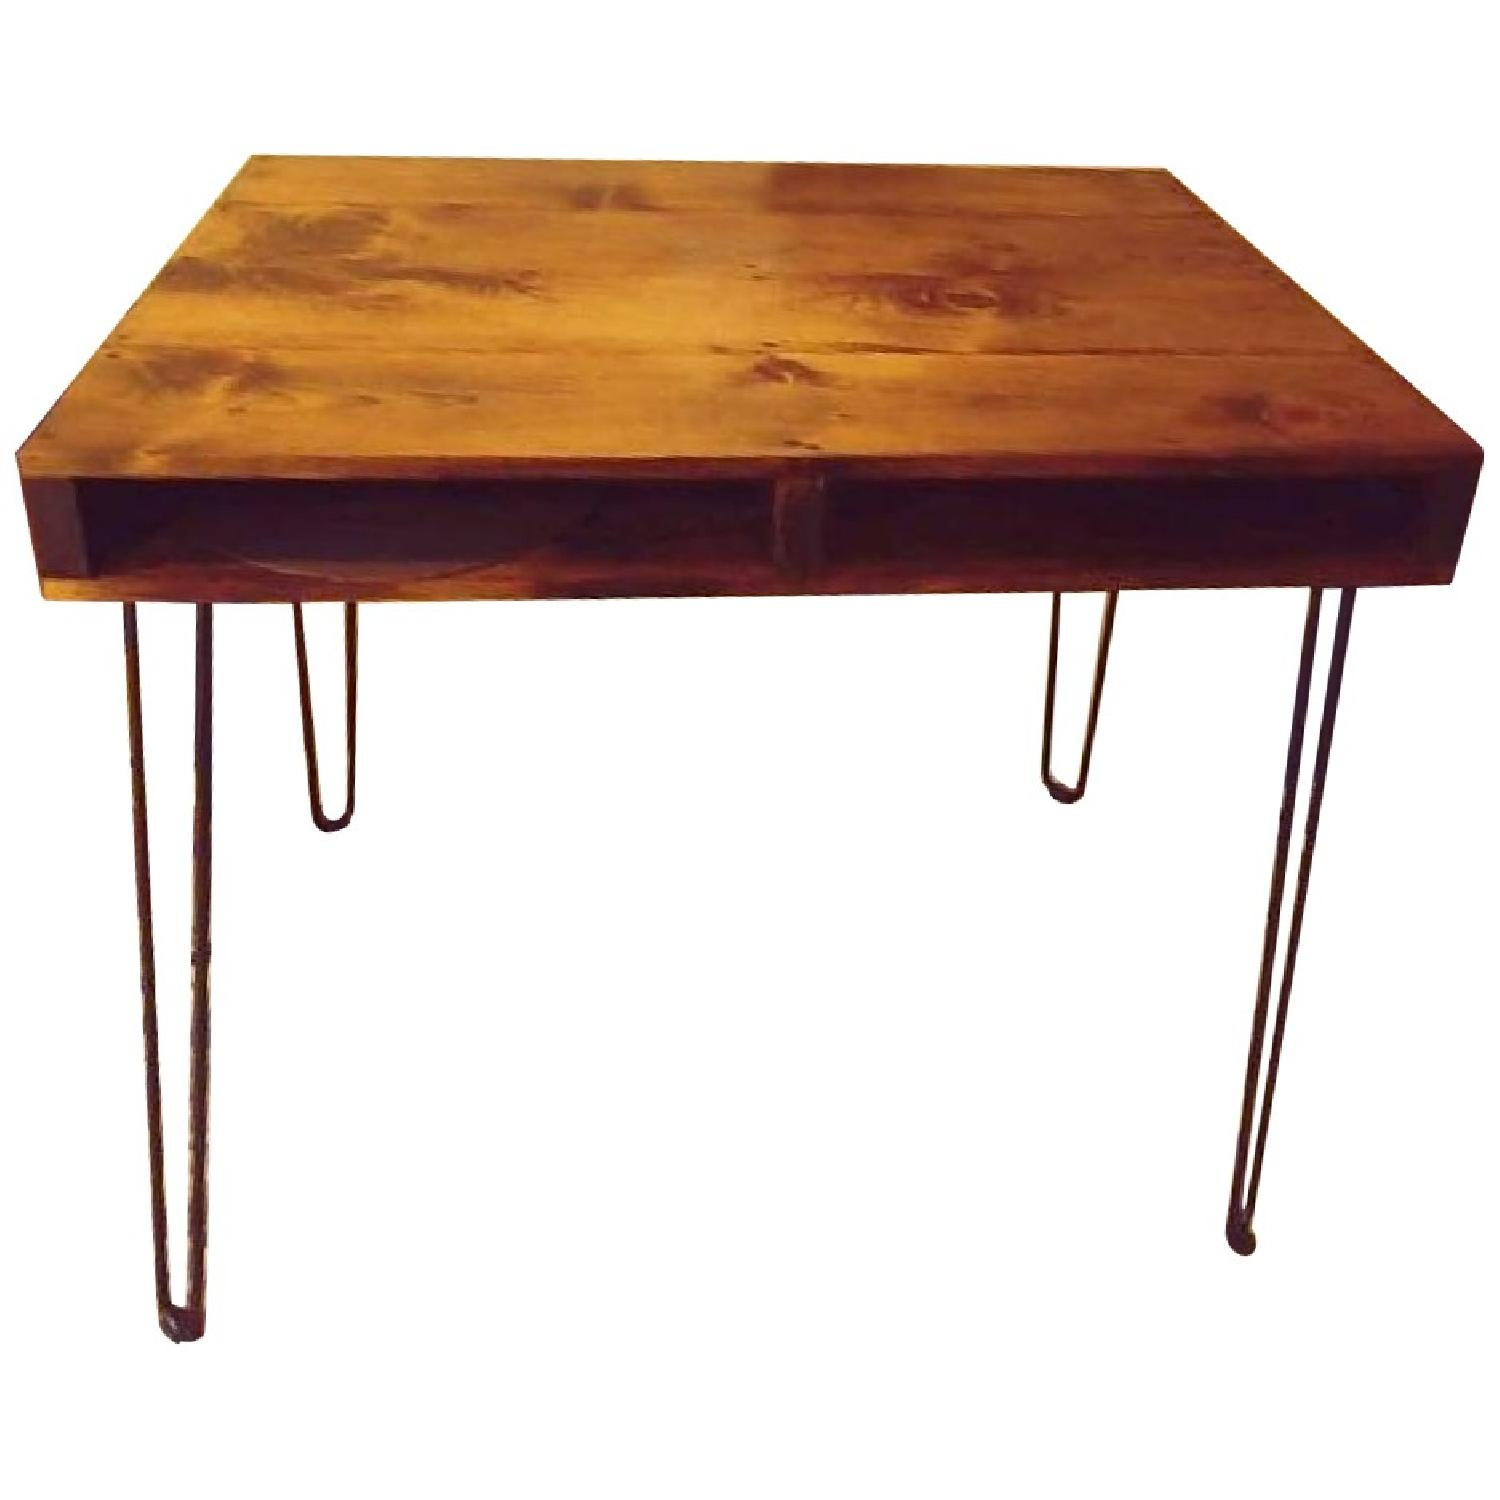 Reclaimed Wood Rustic Dining/Bar Table